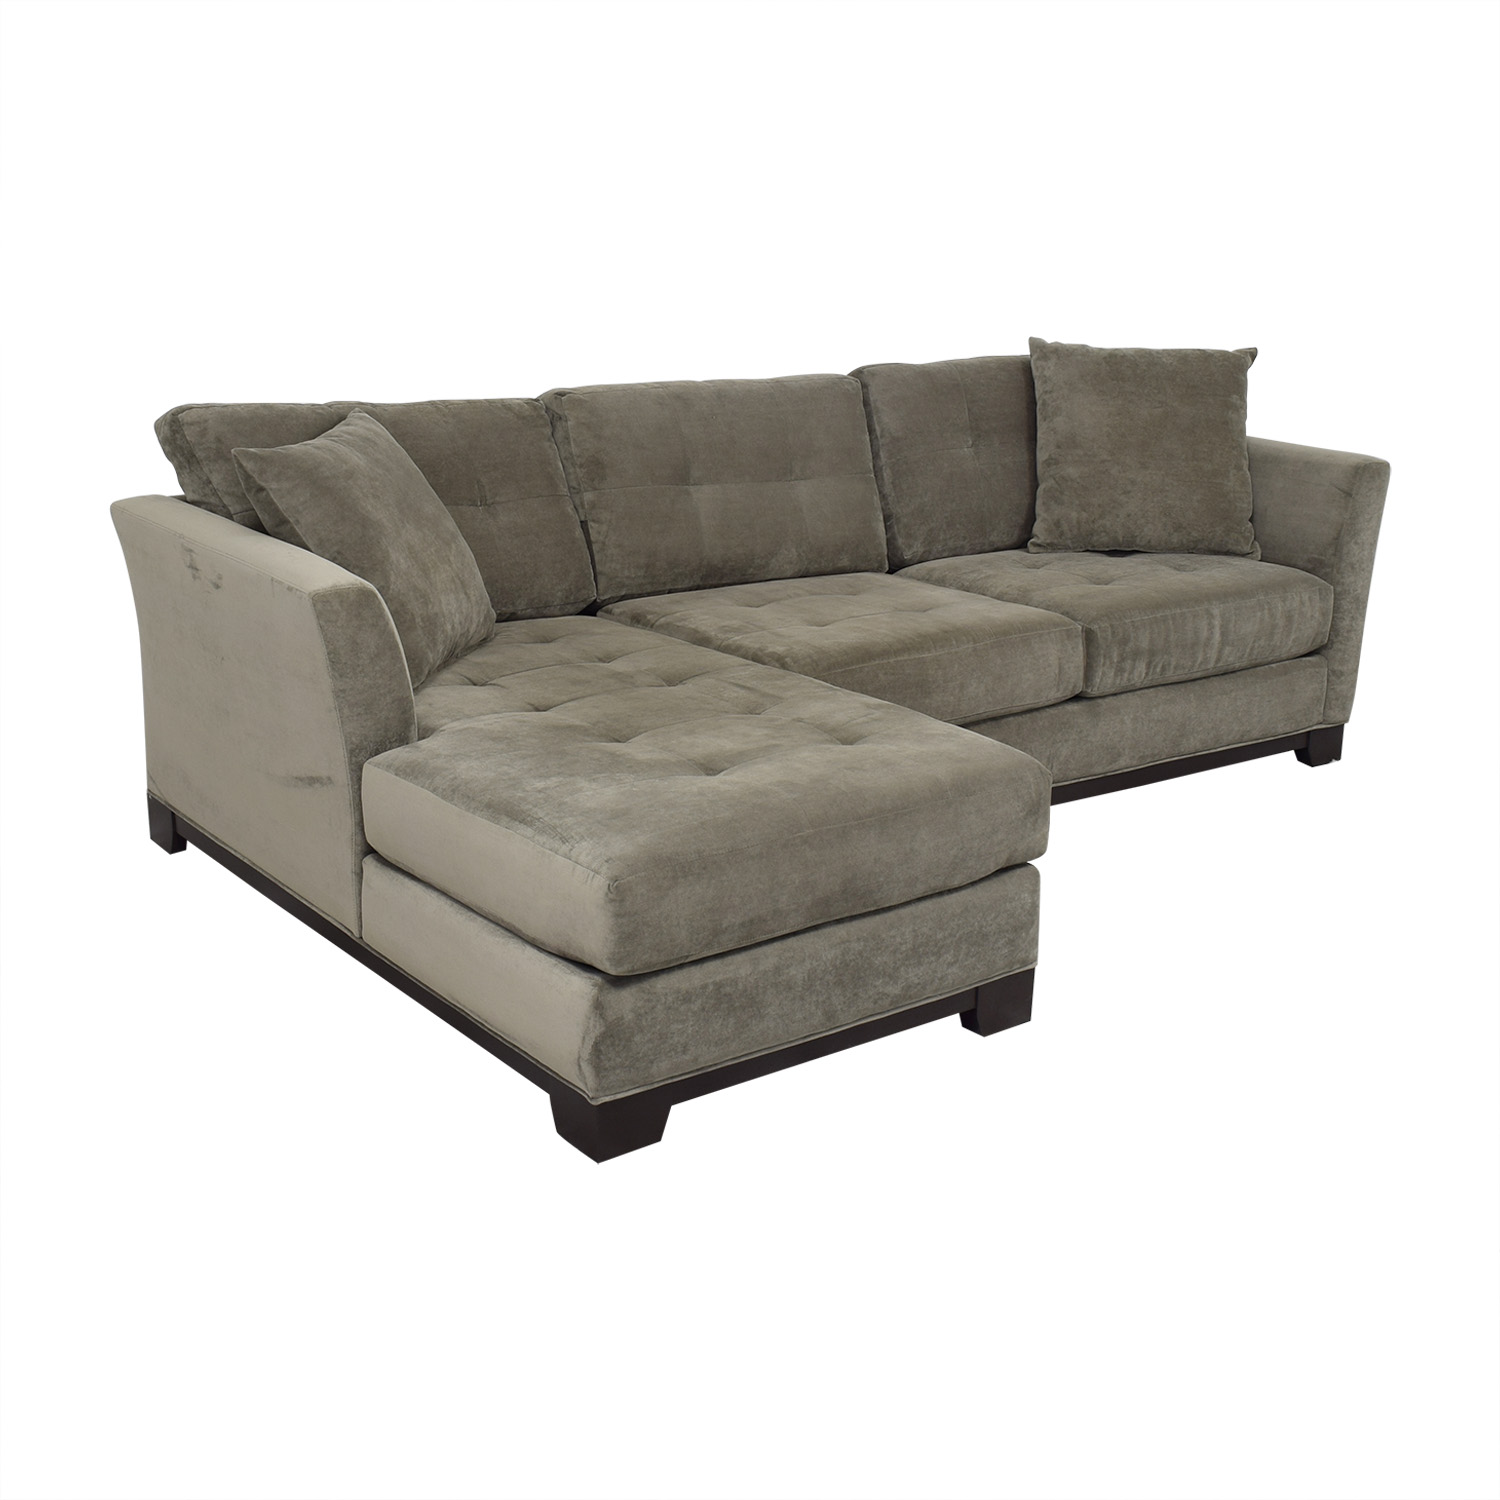 Macy's Macy's Jonathan Louis Elliot Chaise Sectional Sofa for sale